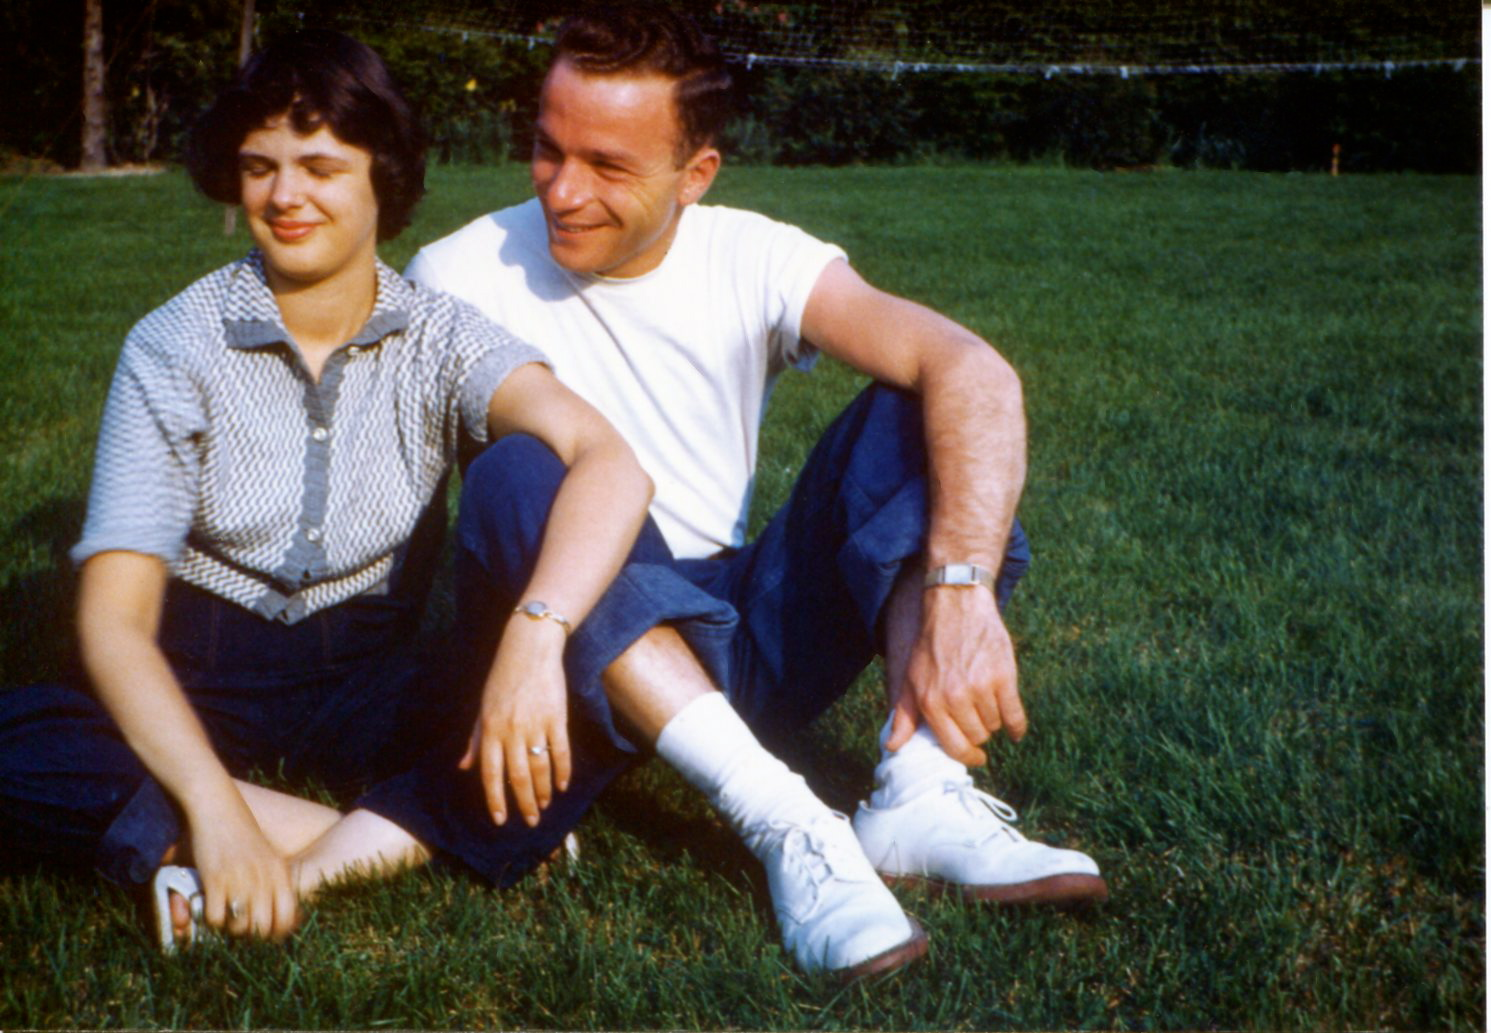 William's parents Dot Ussery & Bill Bass in Blacksburg, Virginia sometime during the Summer of 1953. They were soon married on Saturday the 22nd of August that year.